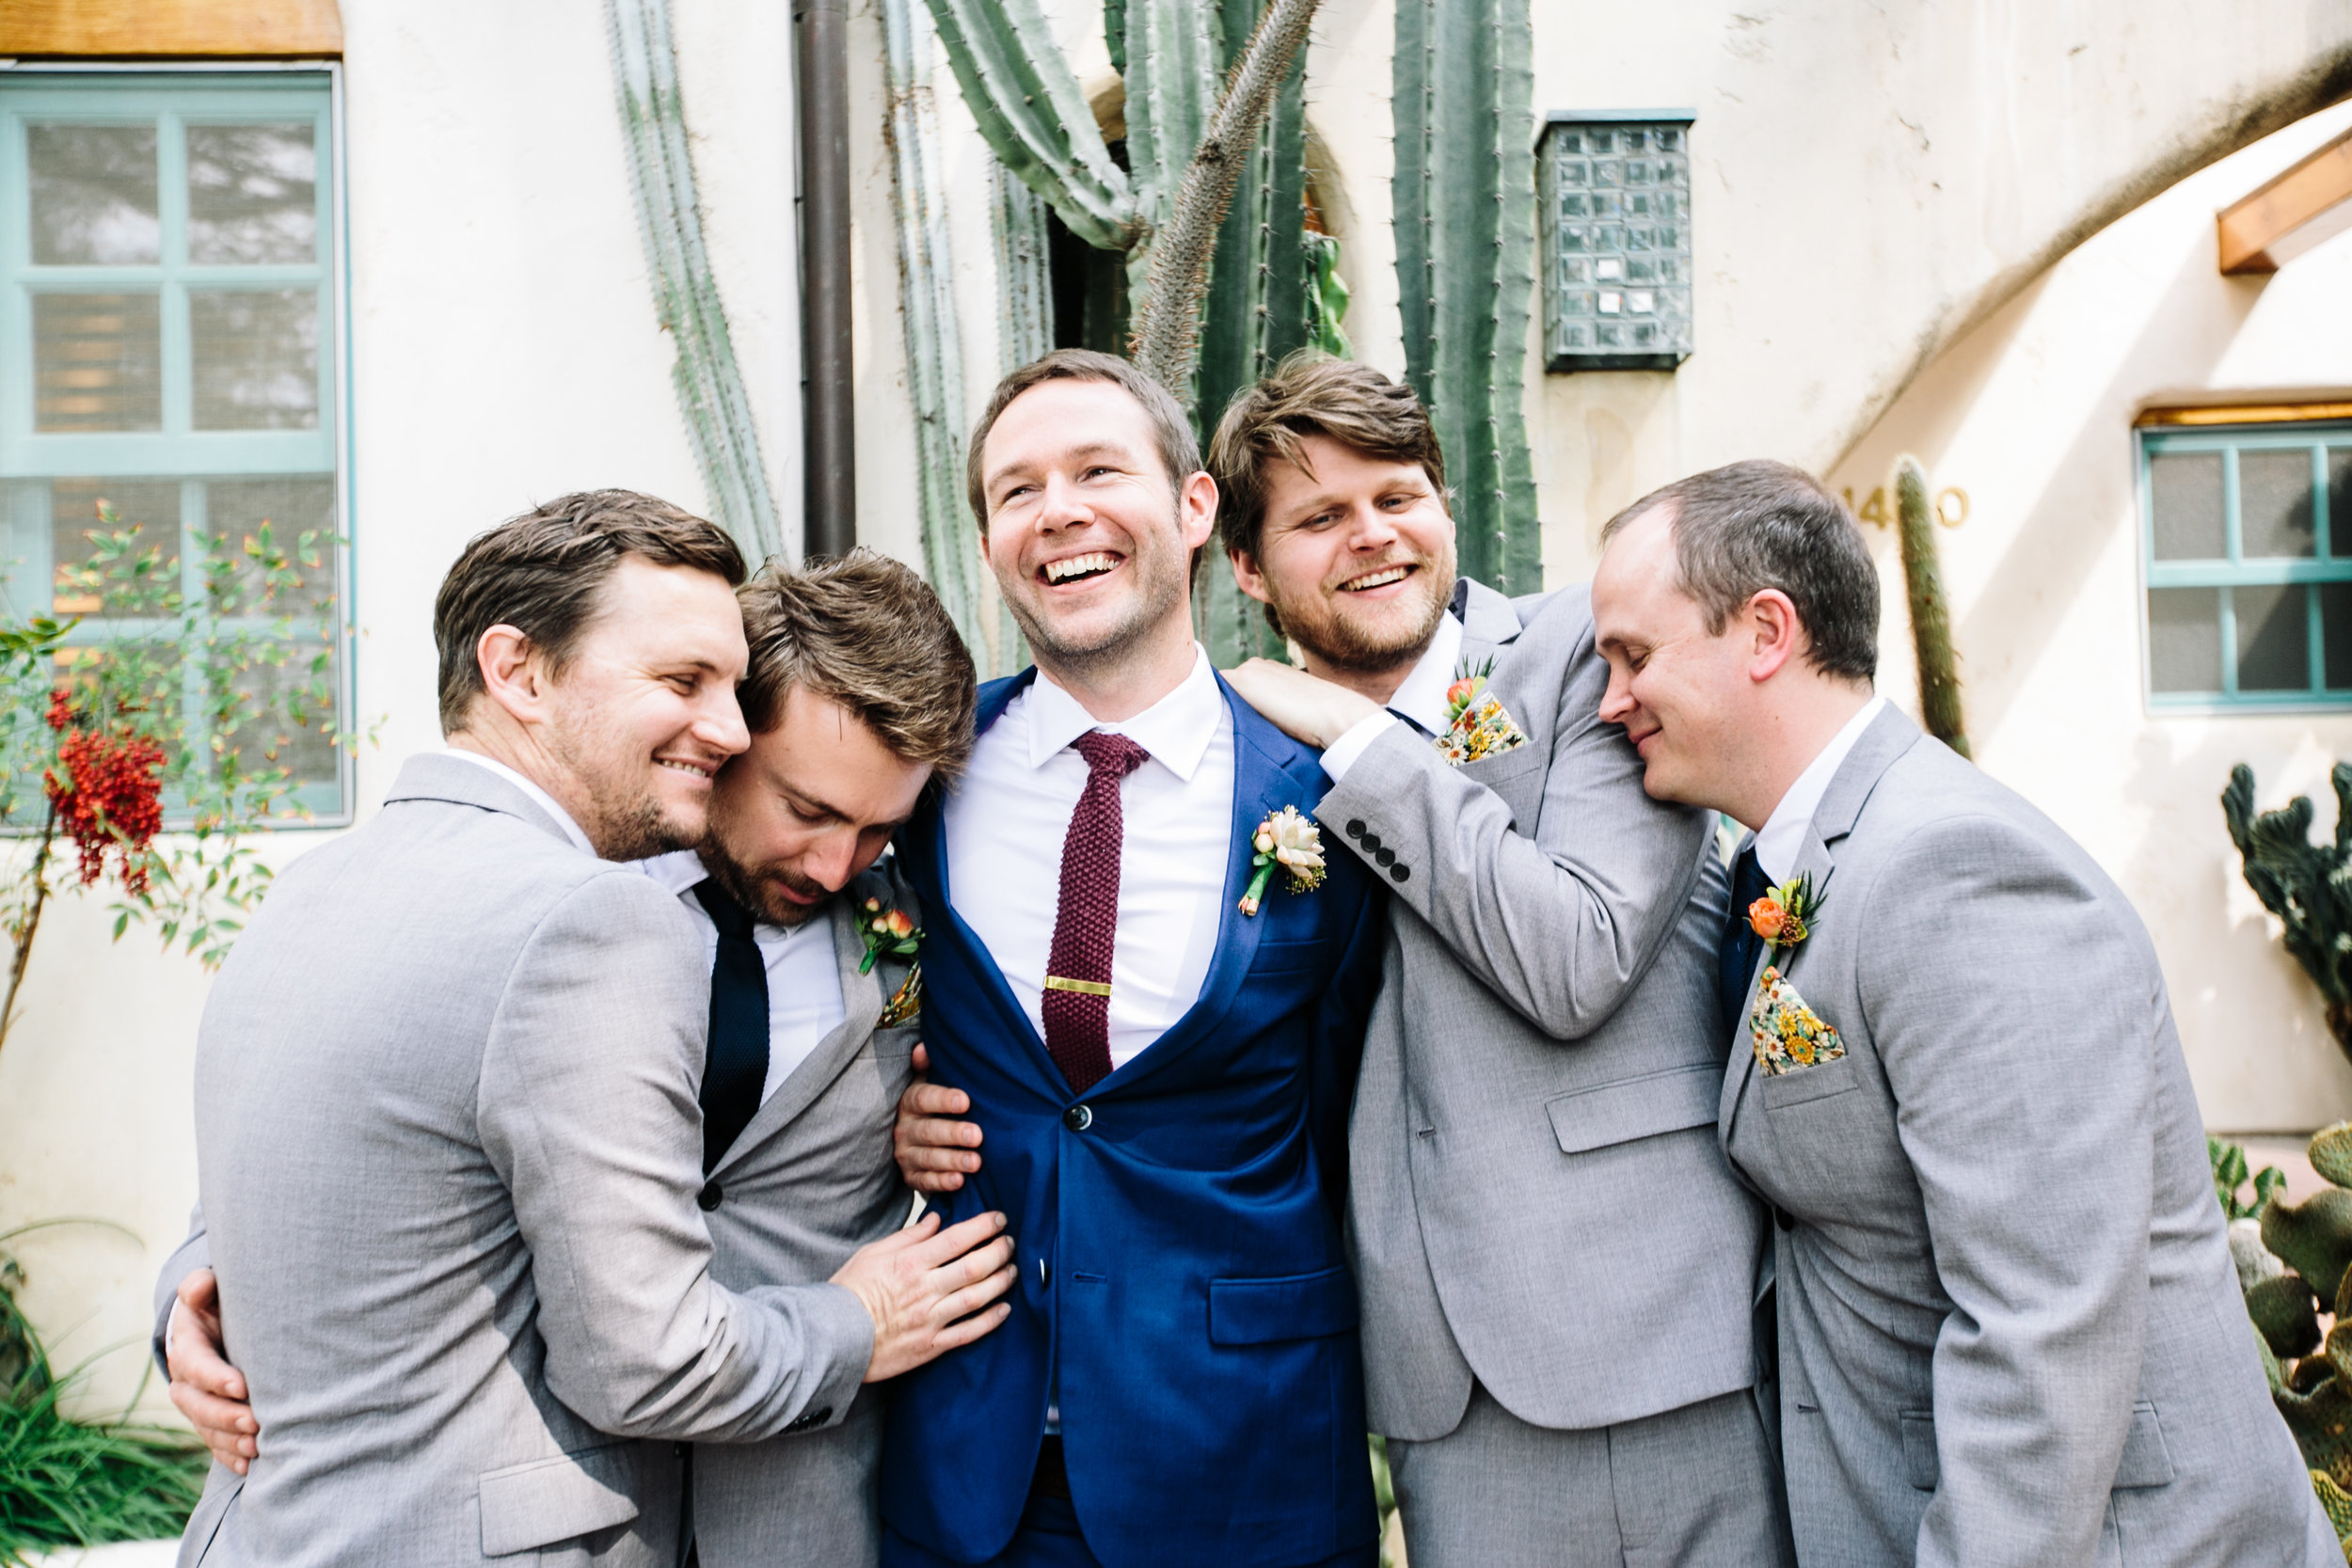 groomsmen have a snuggle moment